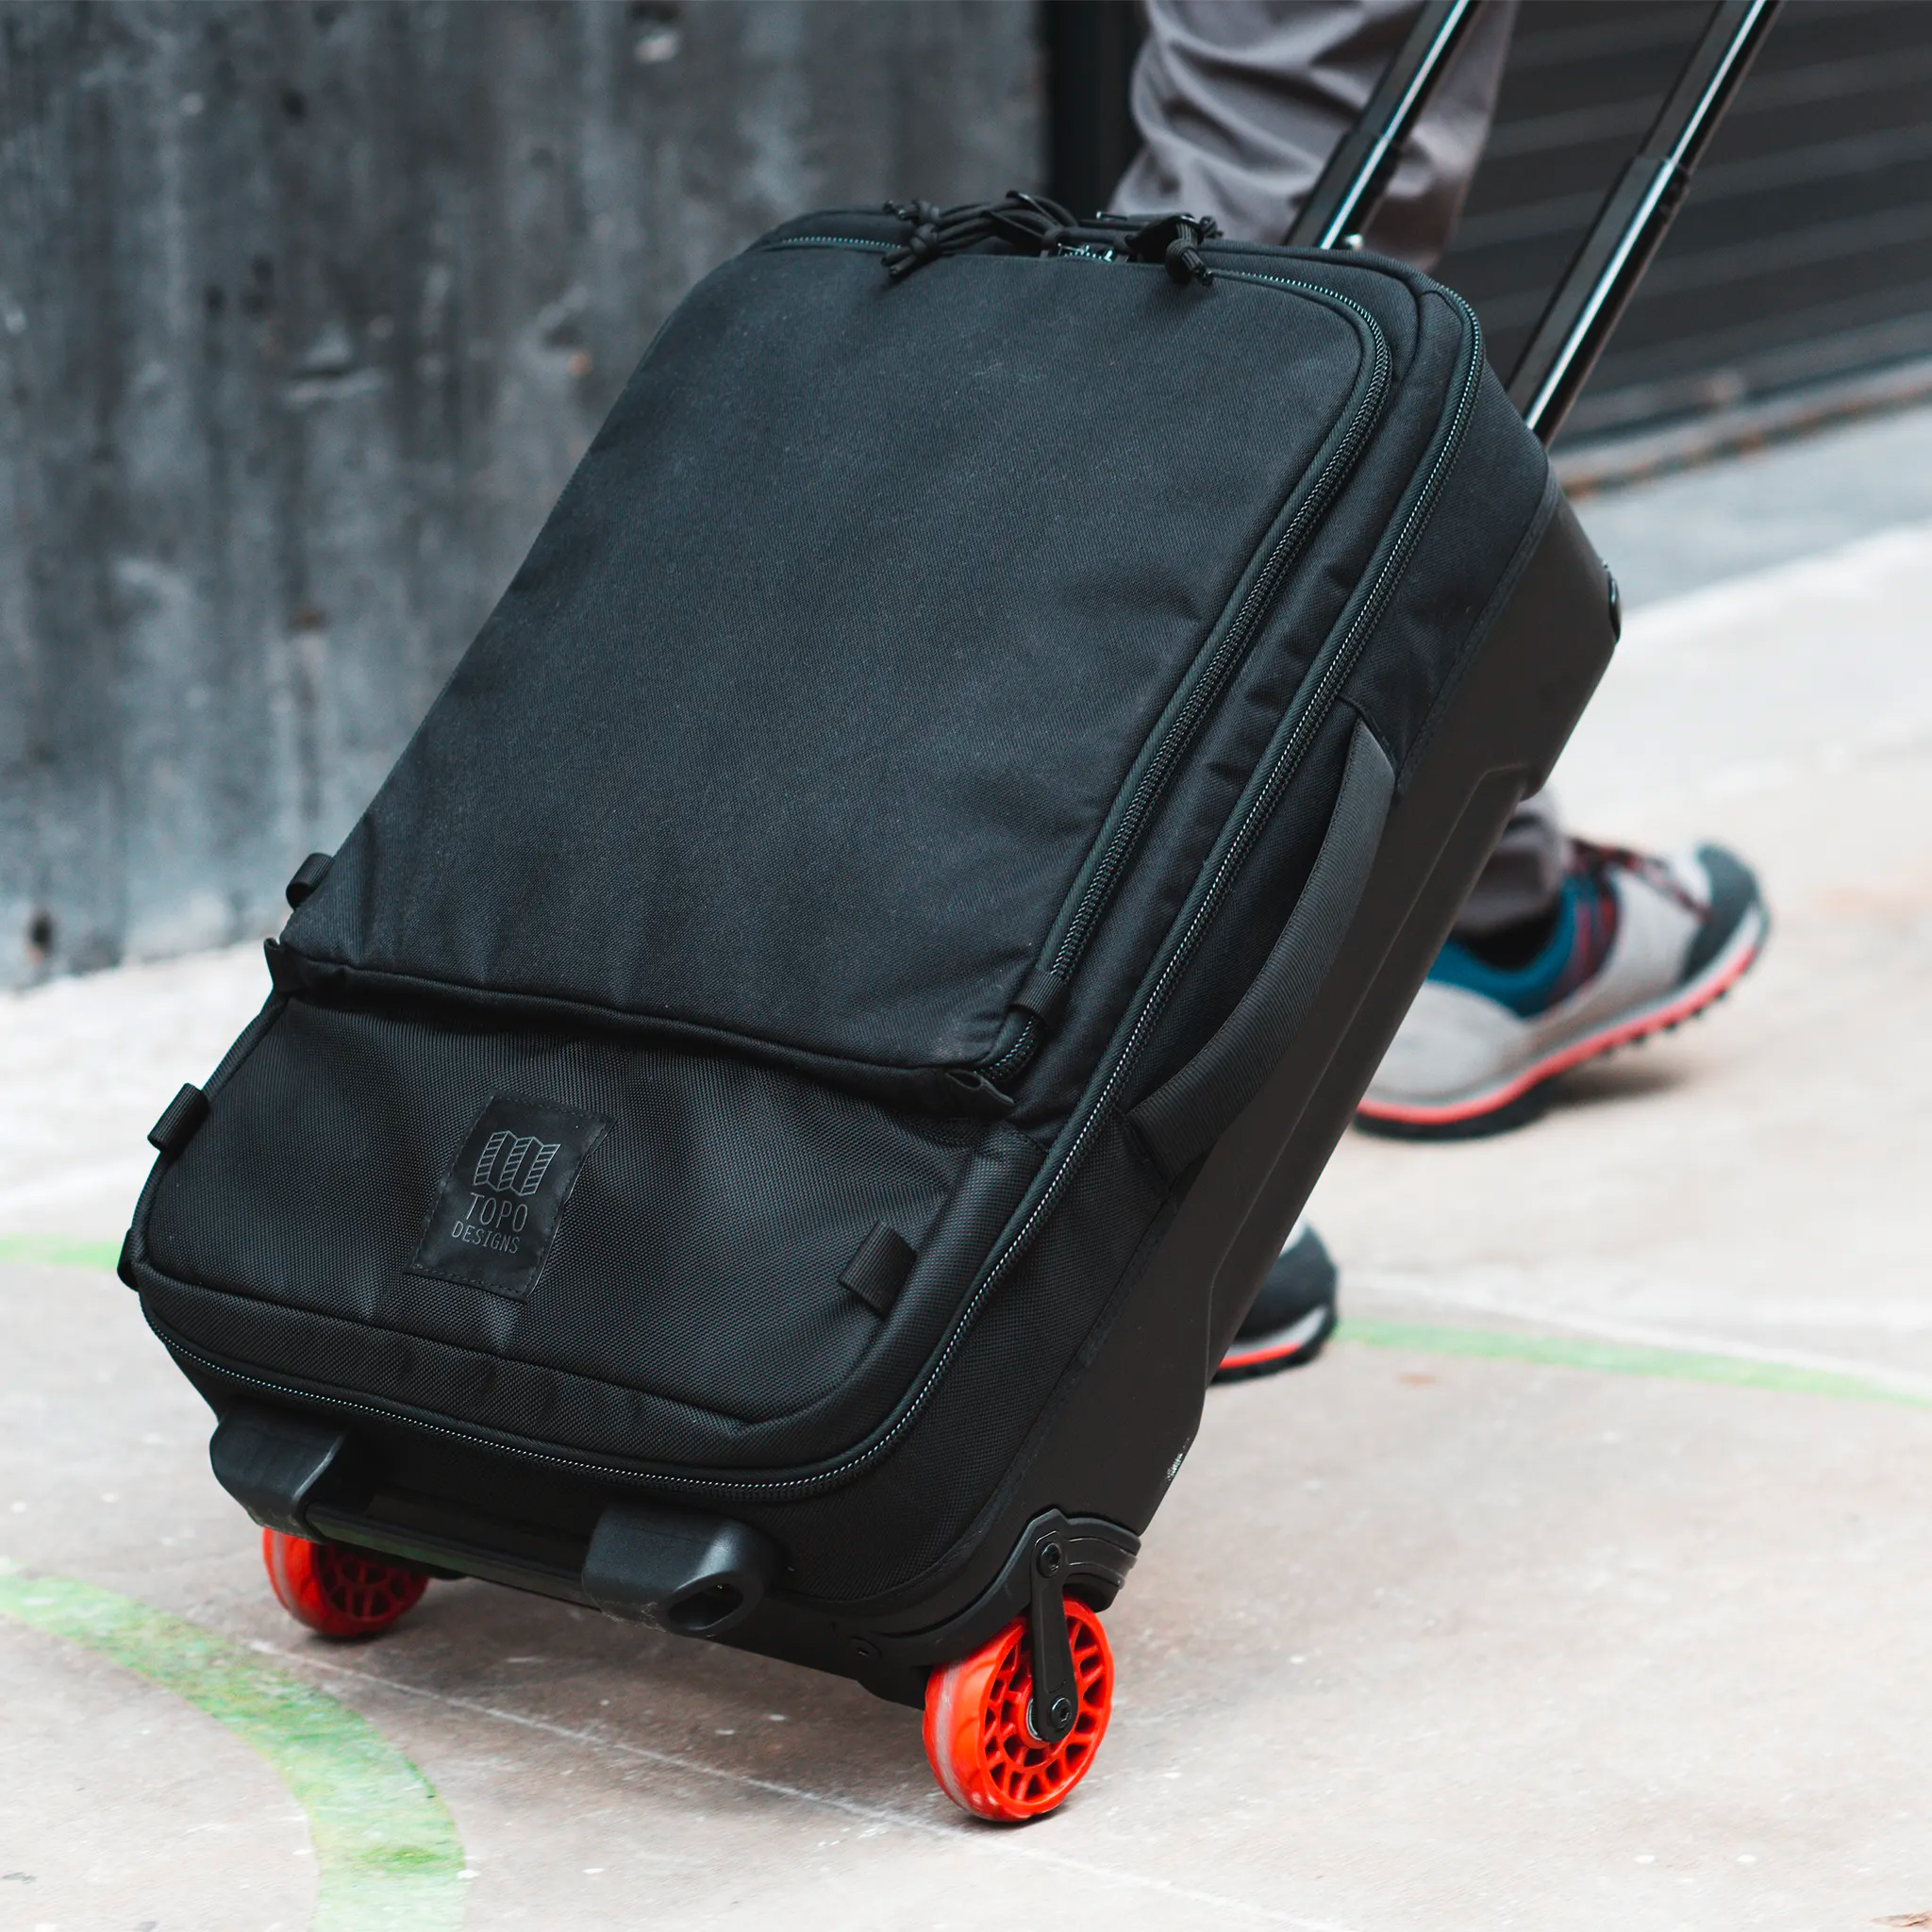 Topo Designs Goes Wheels Up with Travel Bag Roller at werd.com